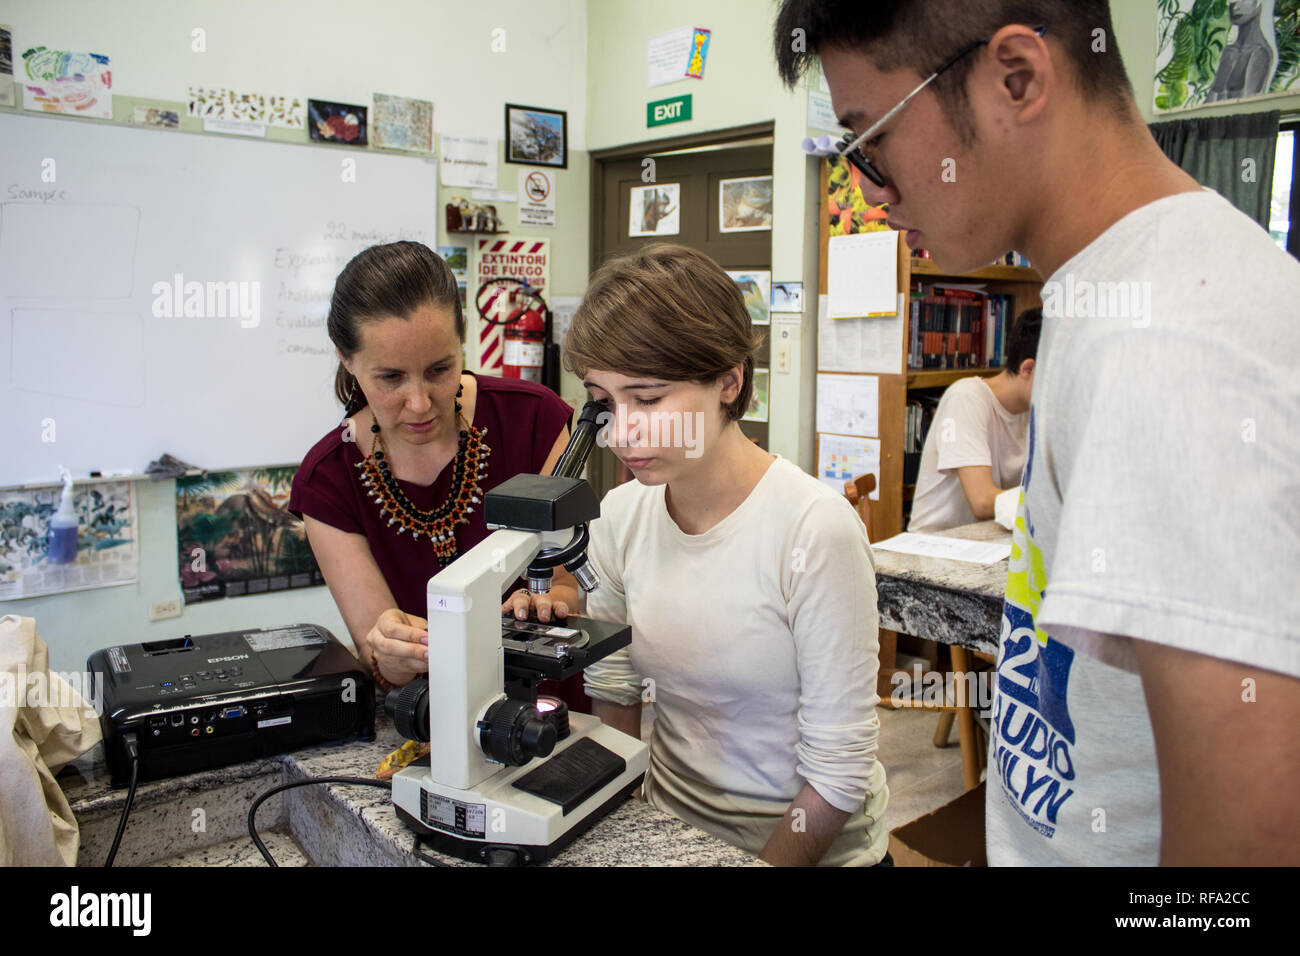 A photo of a female teacher instructing two international students on using a microscope. Investigating a biological sample in a biology class. - Stock Image